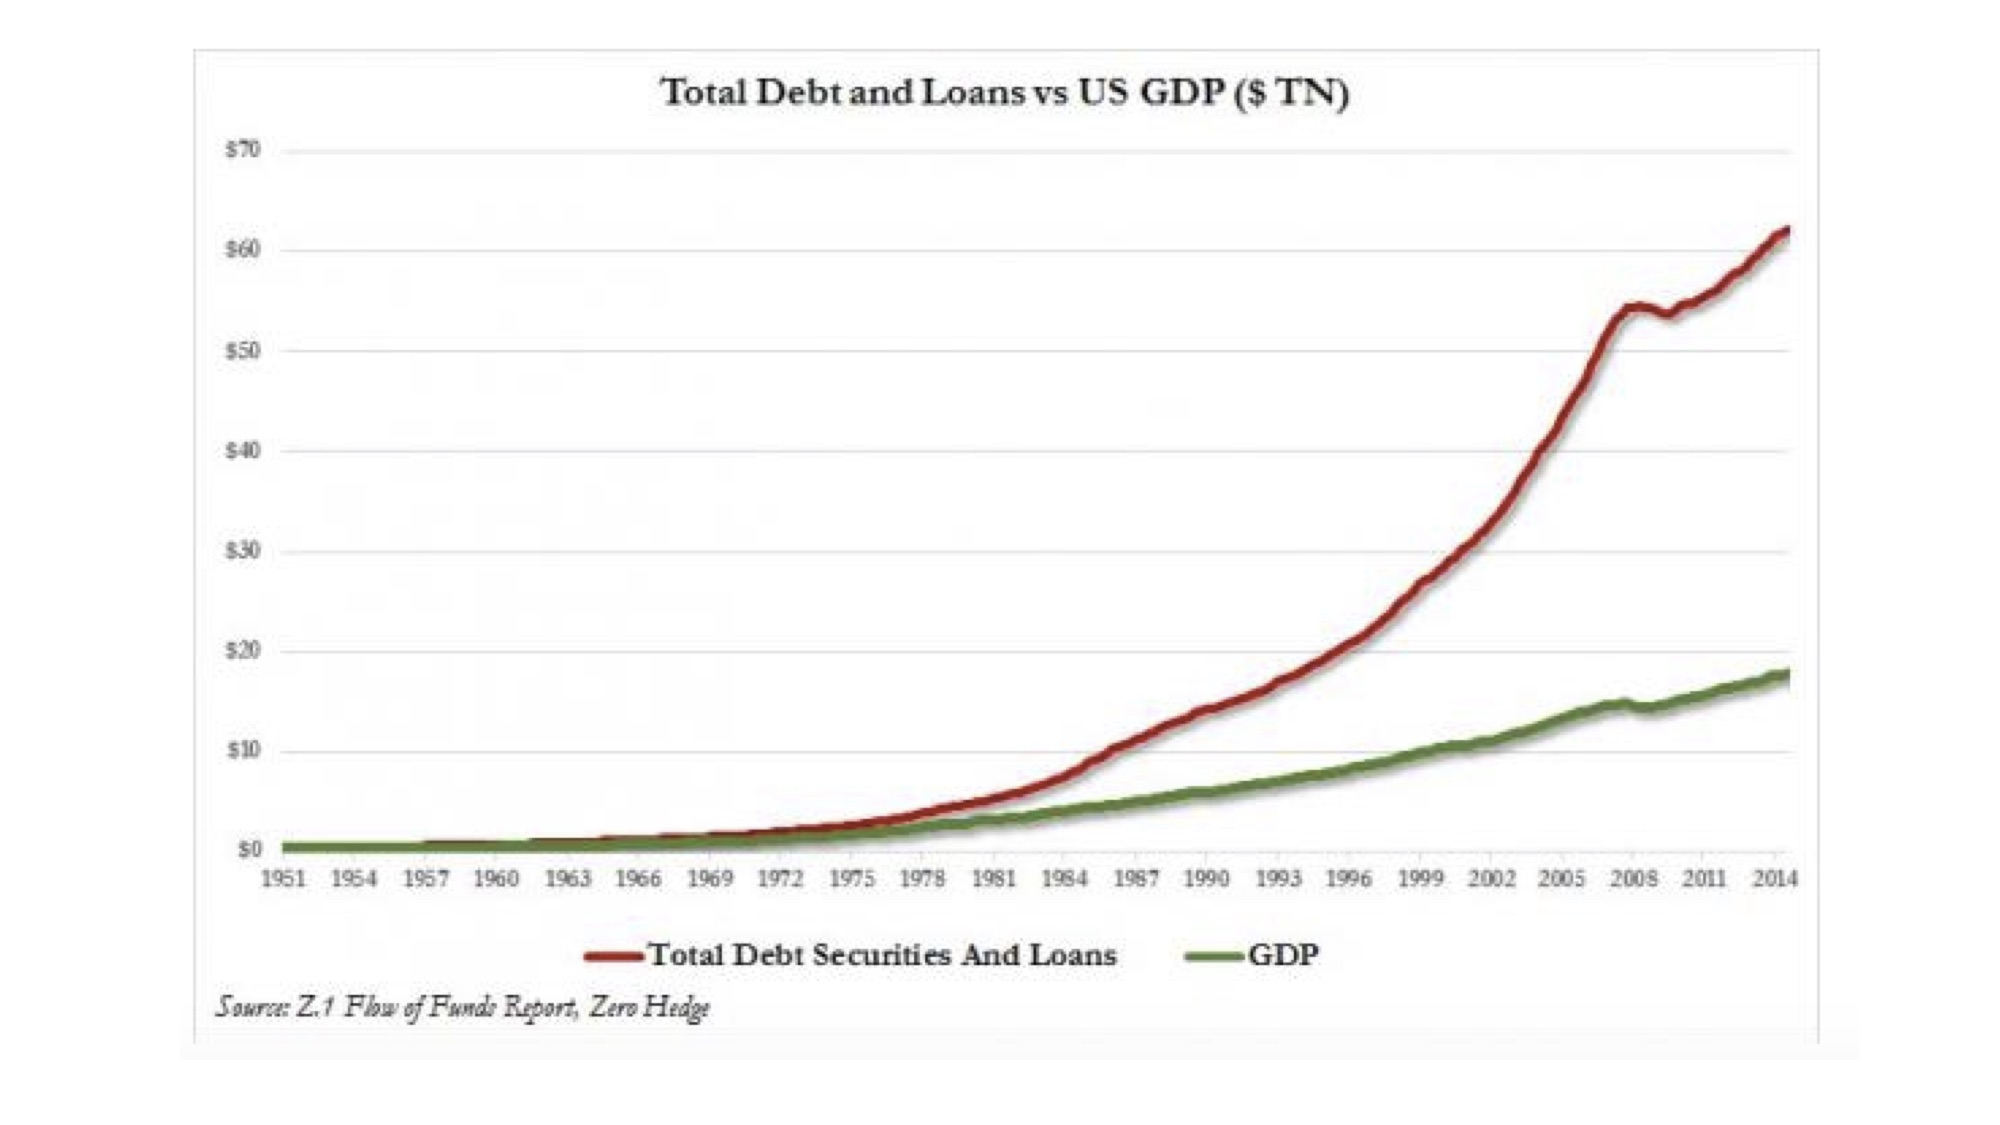 Aside from government debt, corporate and consumer debt levels limit a jump start to the economy through lower interest rates and easy credit. This chart displays the disheartening effect that ever-increasing debt levels have had on our ability to grow our economy. All told, the U.S. economy's total debt is approximately FOUR times the annual output of our economy.